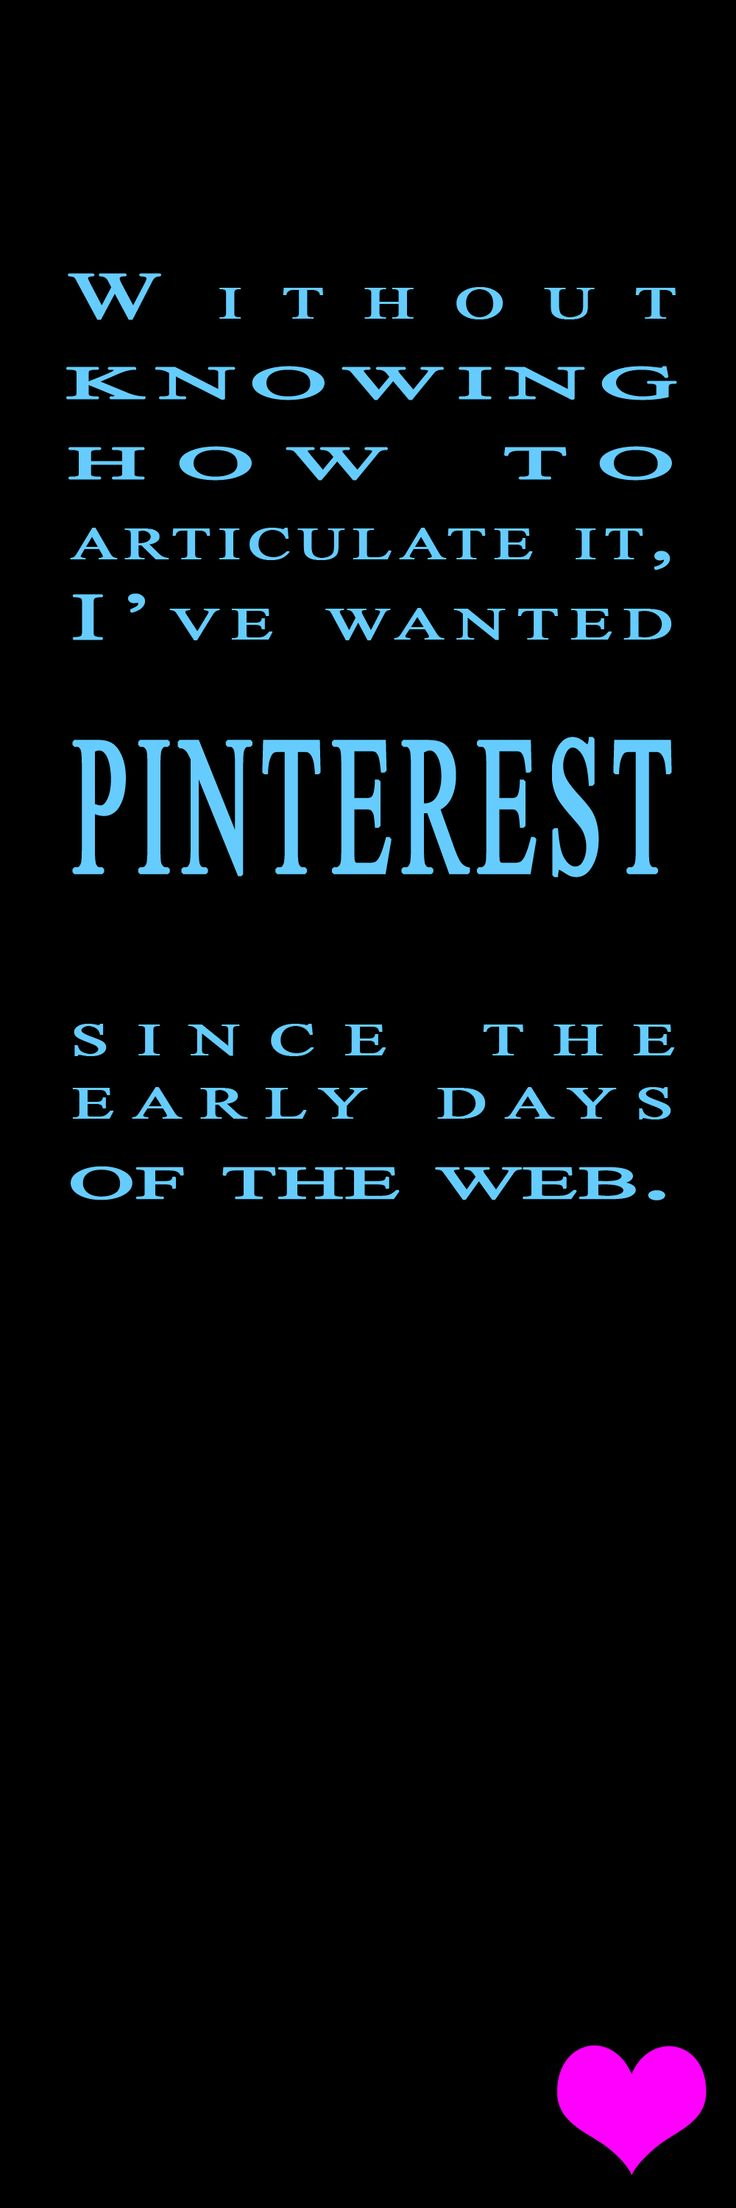 This is exactly how I feel too! Thank God for Pinterest! <3